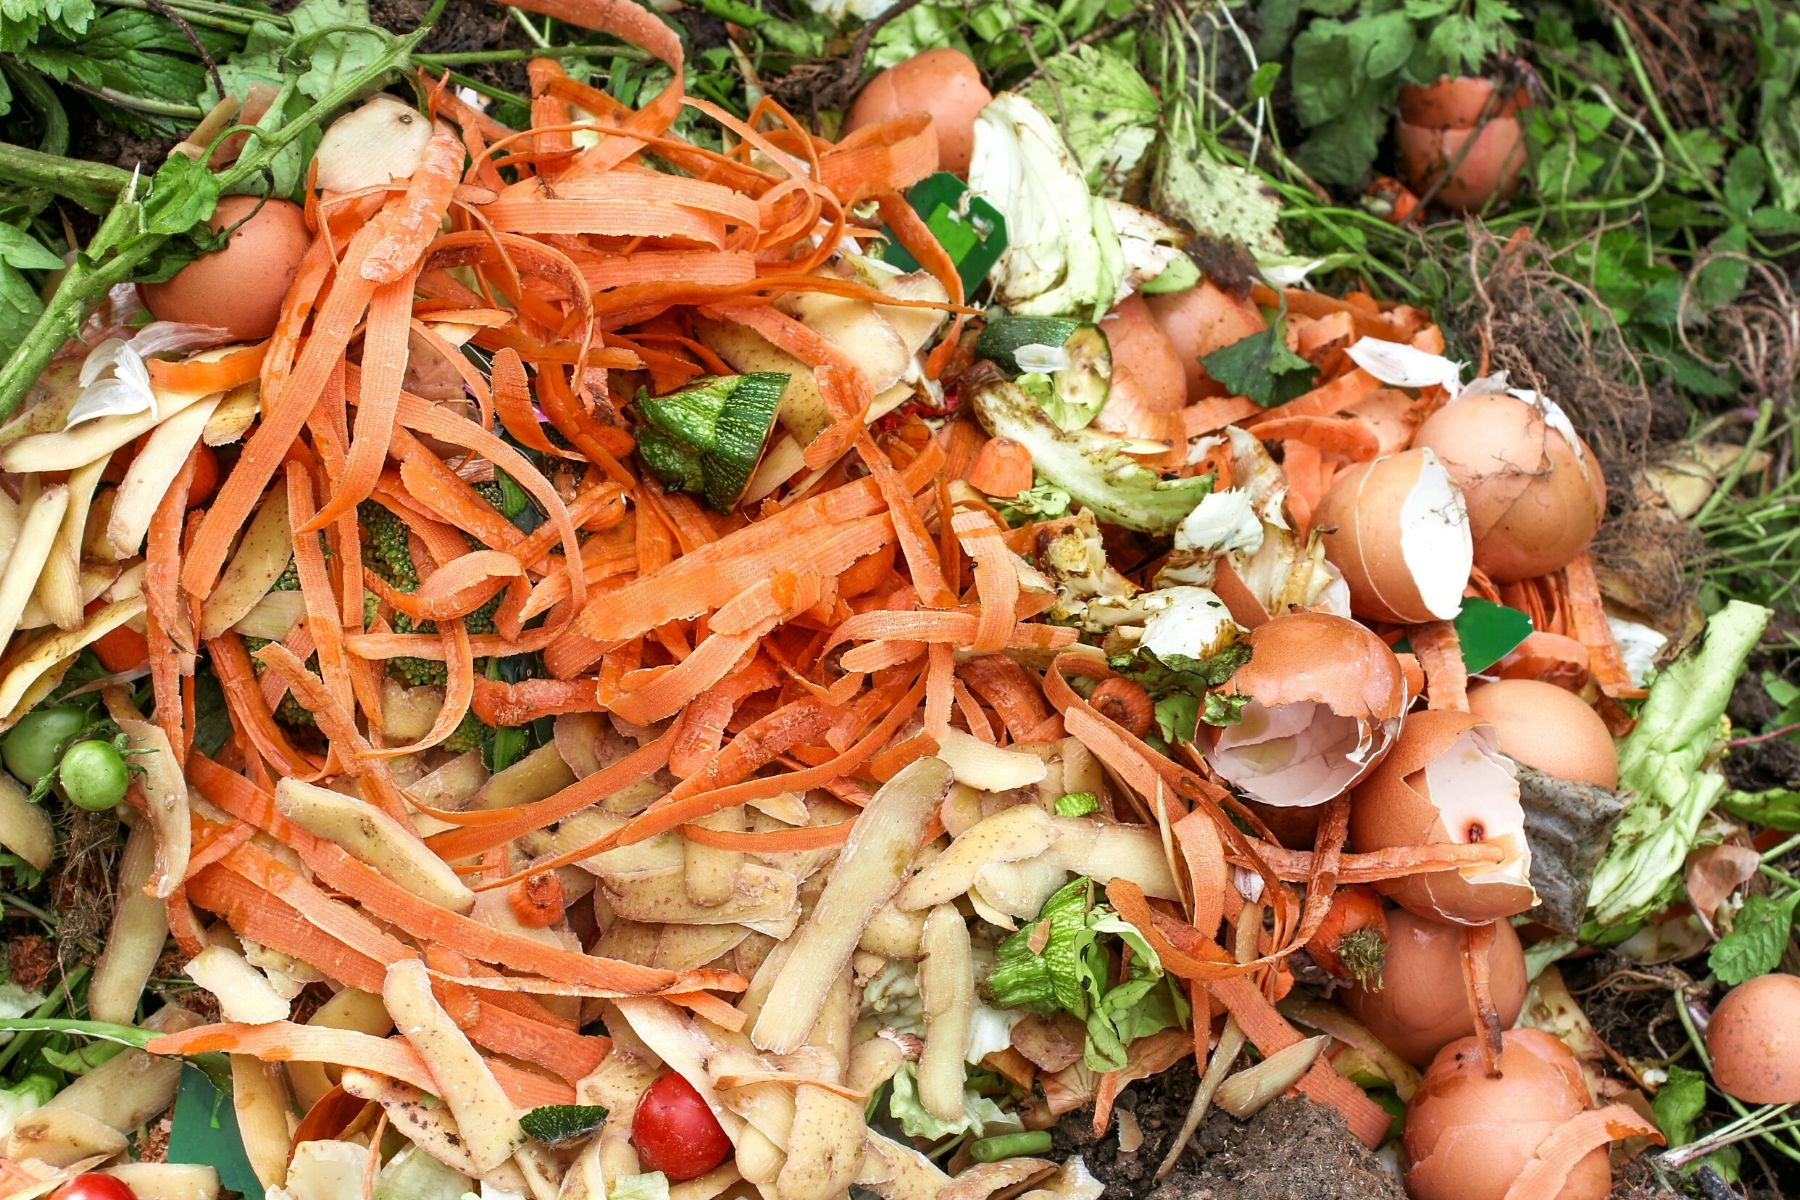 NJ_Food Waste Source: Canva